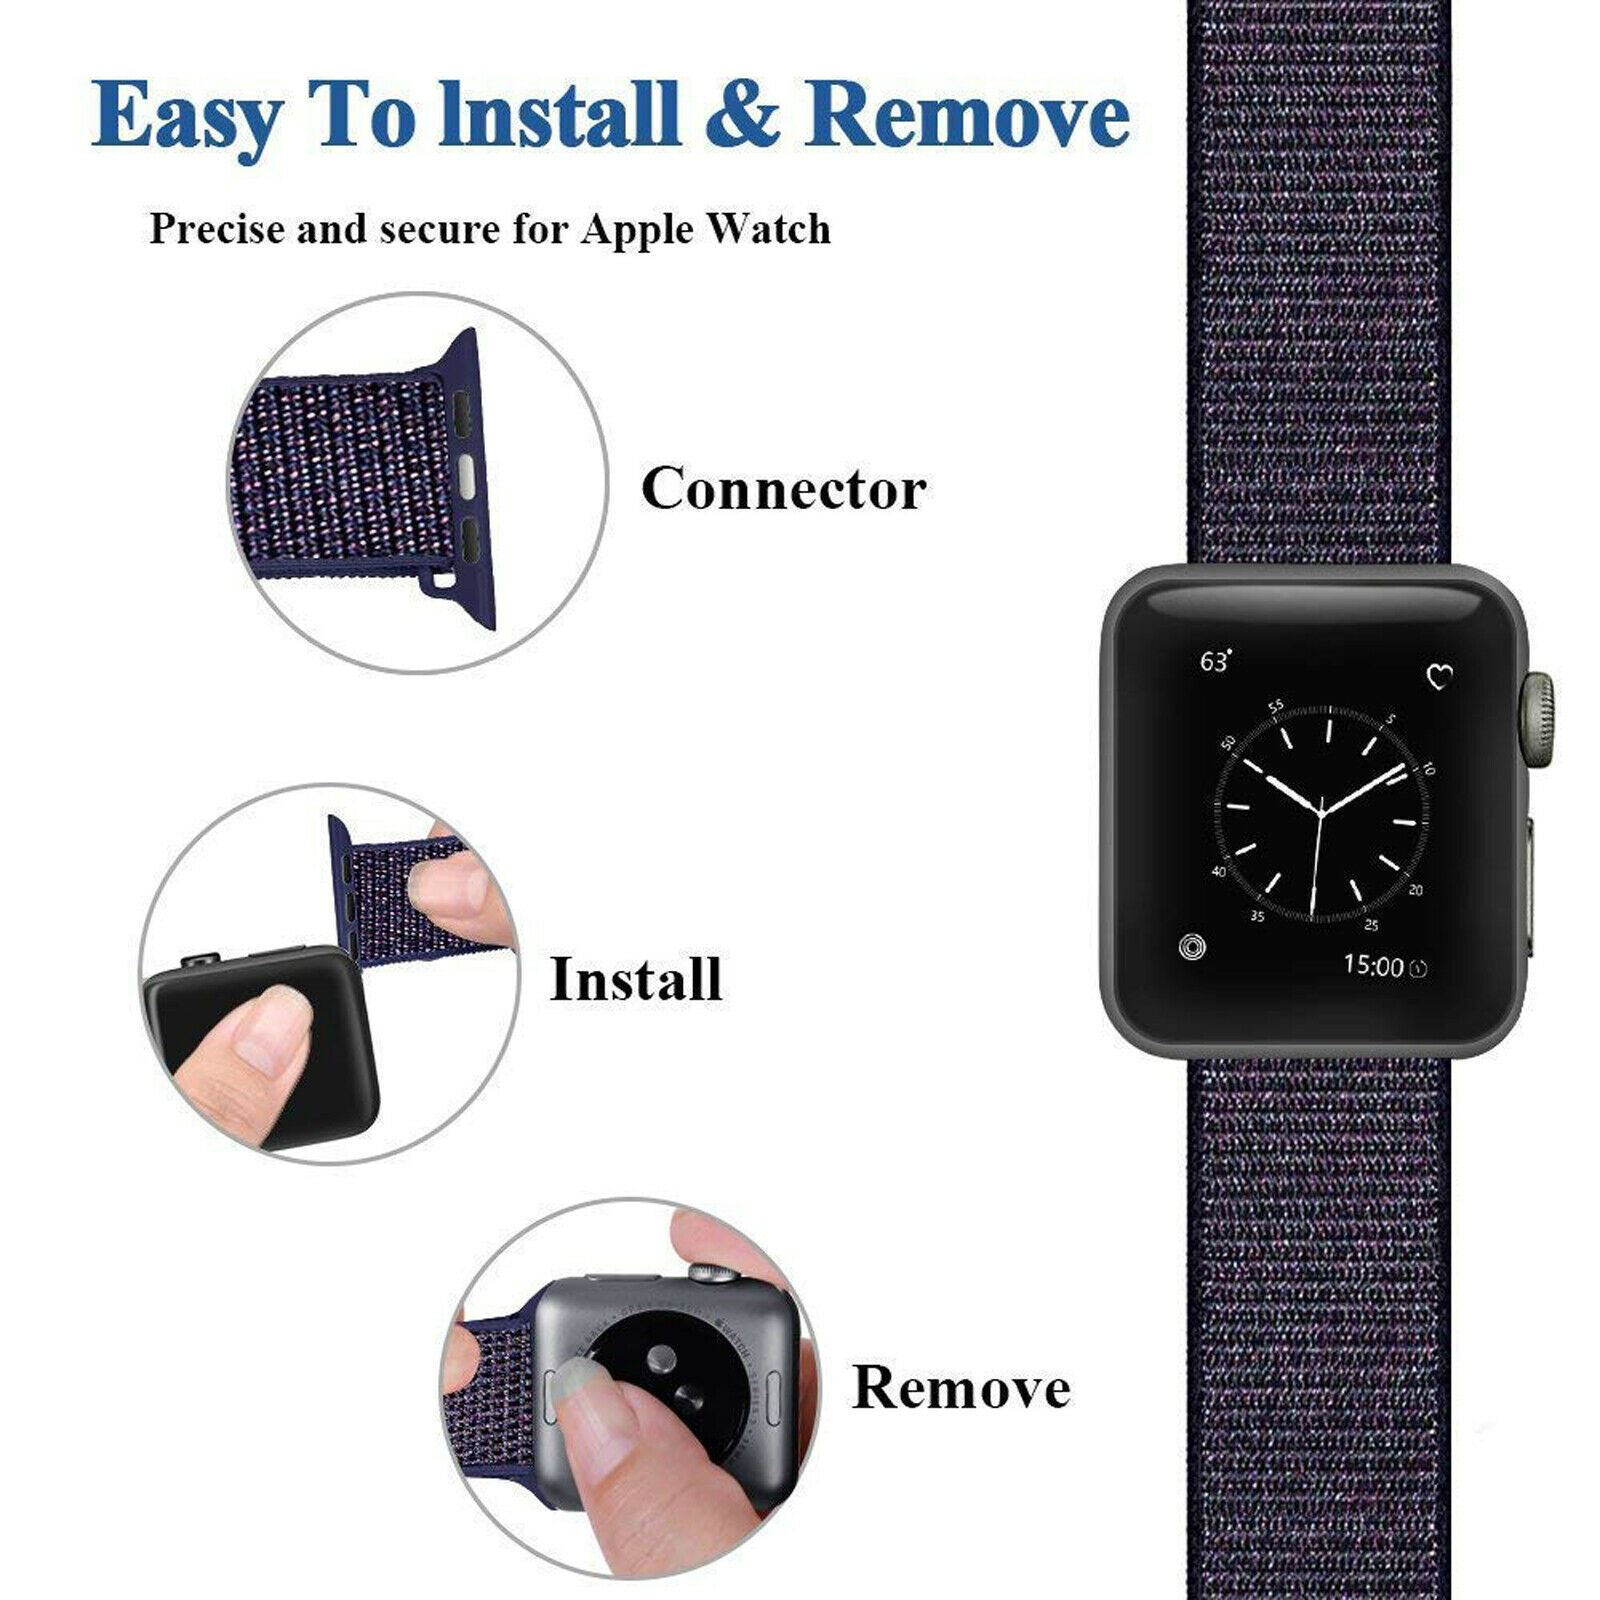 Band-Strap-For-Apple-Watch-Adjustable-Waterproof-Braided-Nylon-Material thumbnail 38